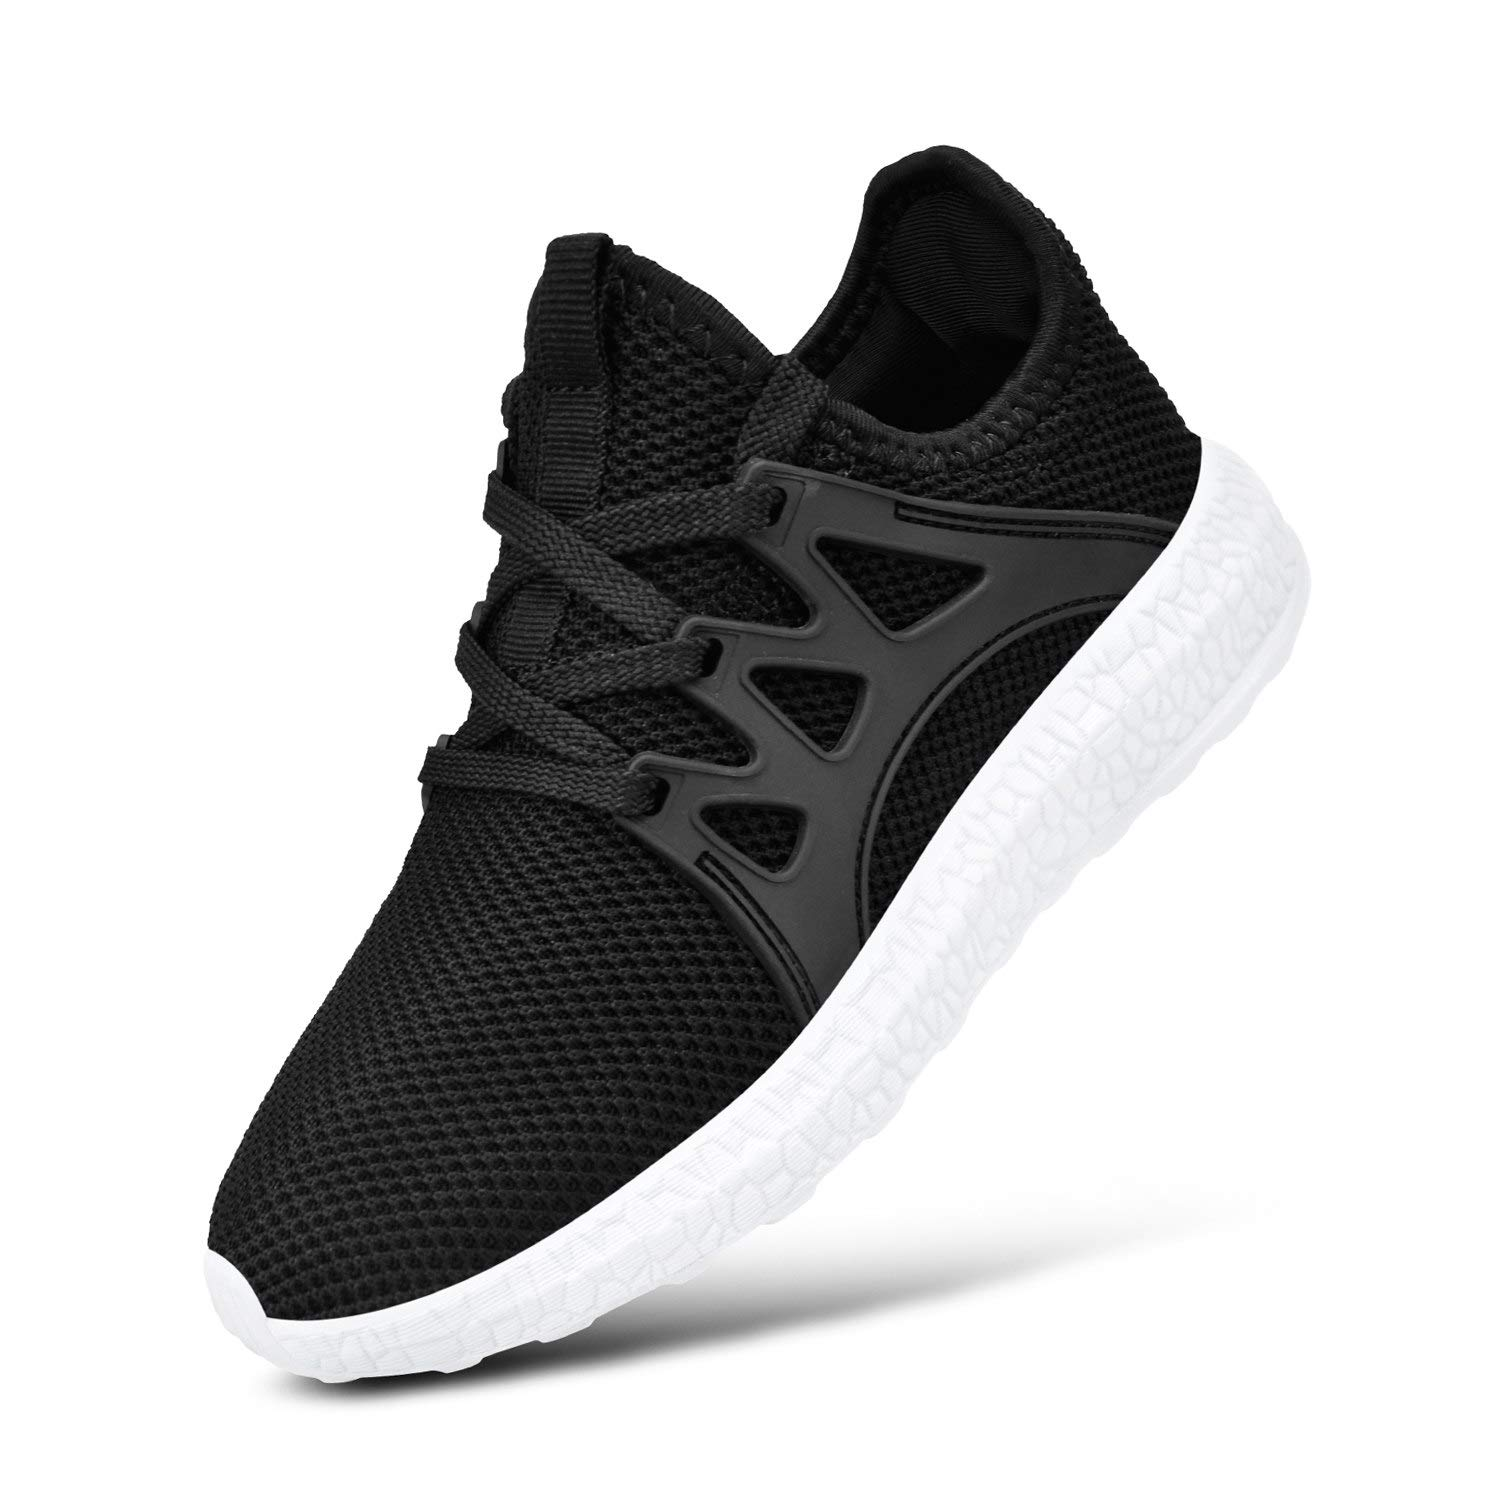 MARSVOVO Shoes for Girls Mesh Light Weight Breathable Runing Walking Sneakers for Boys&Girls Black White Size4 Big Kid